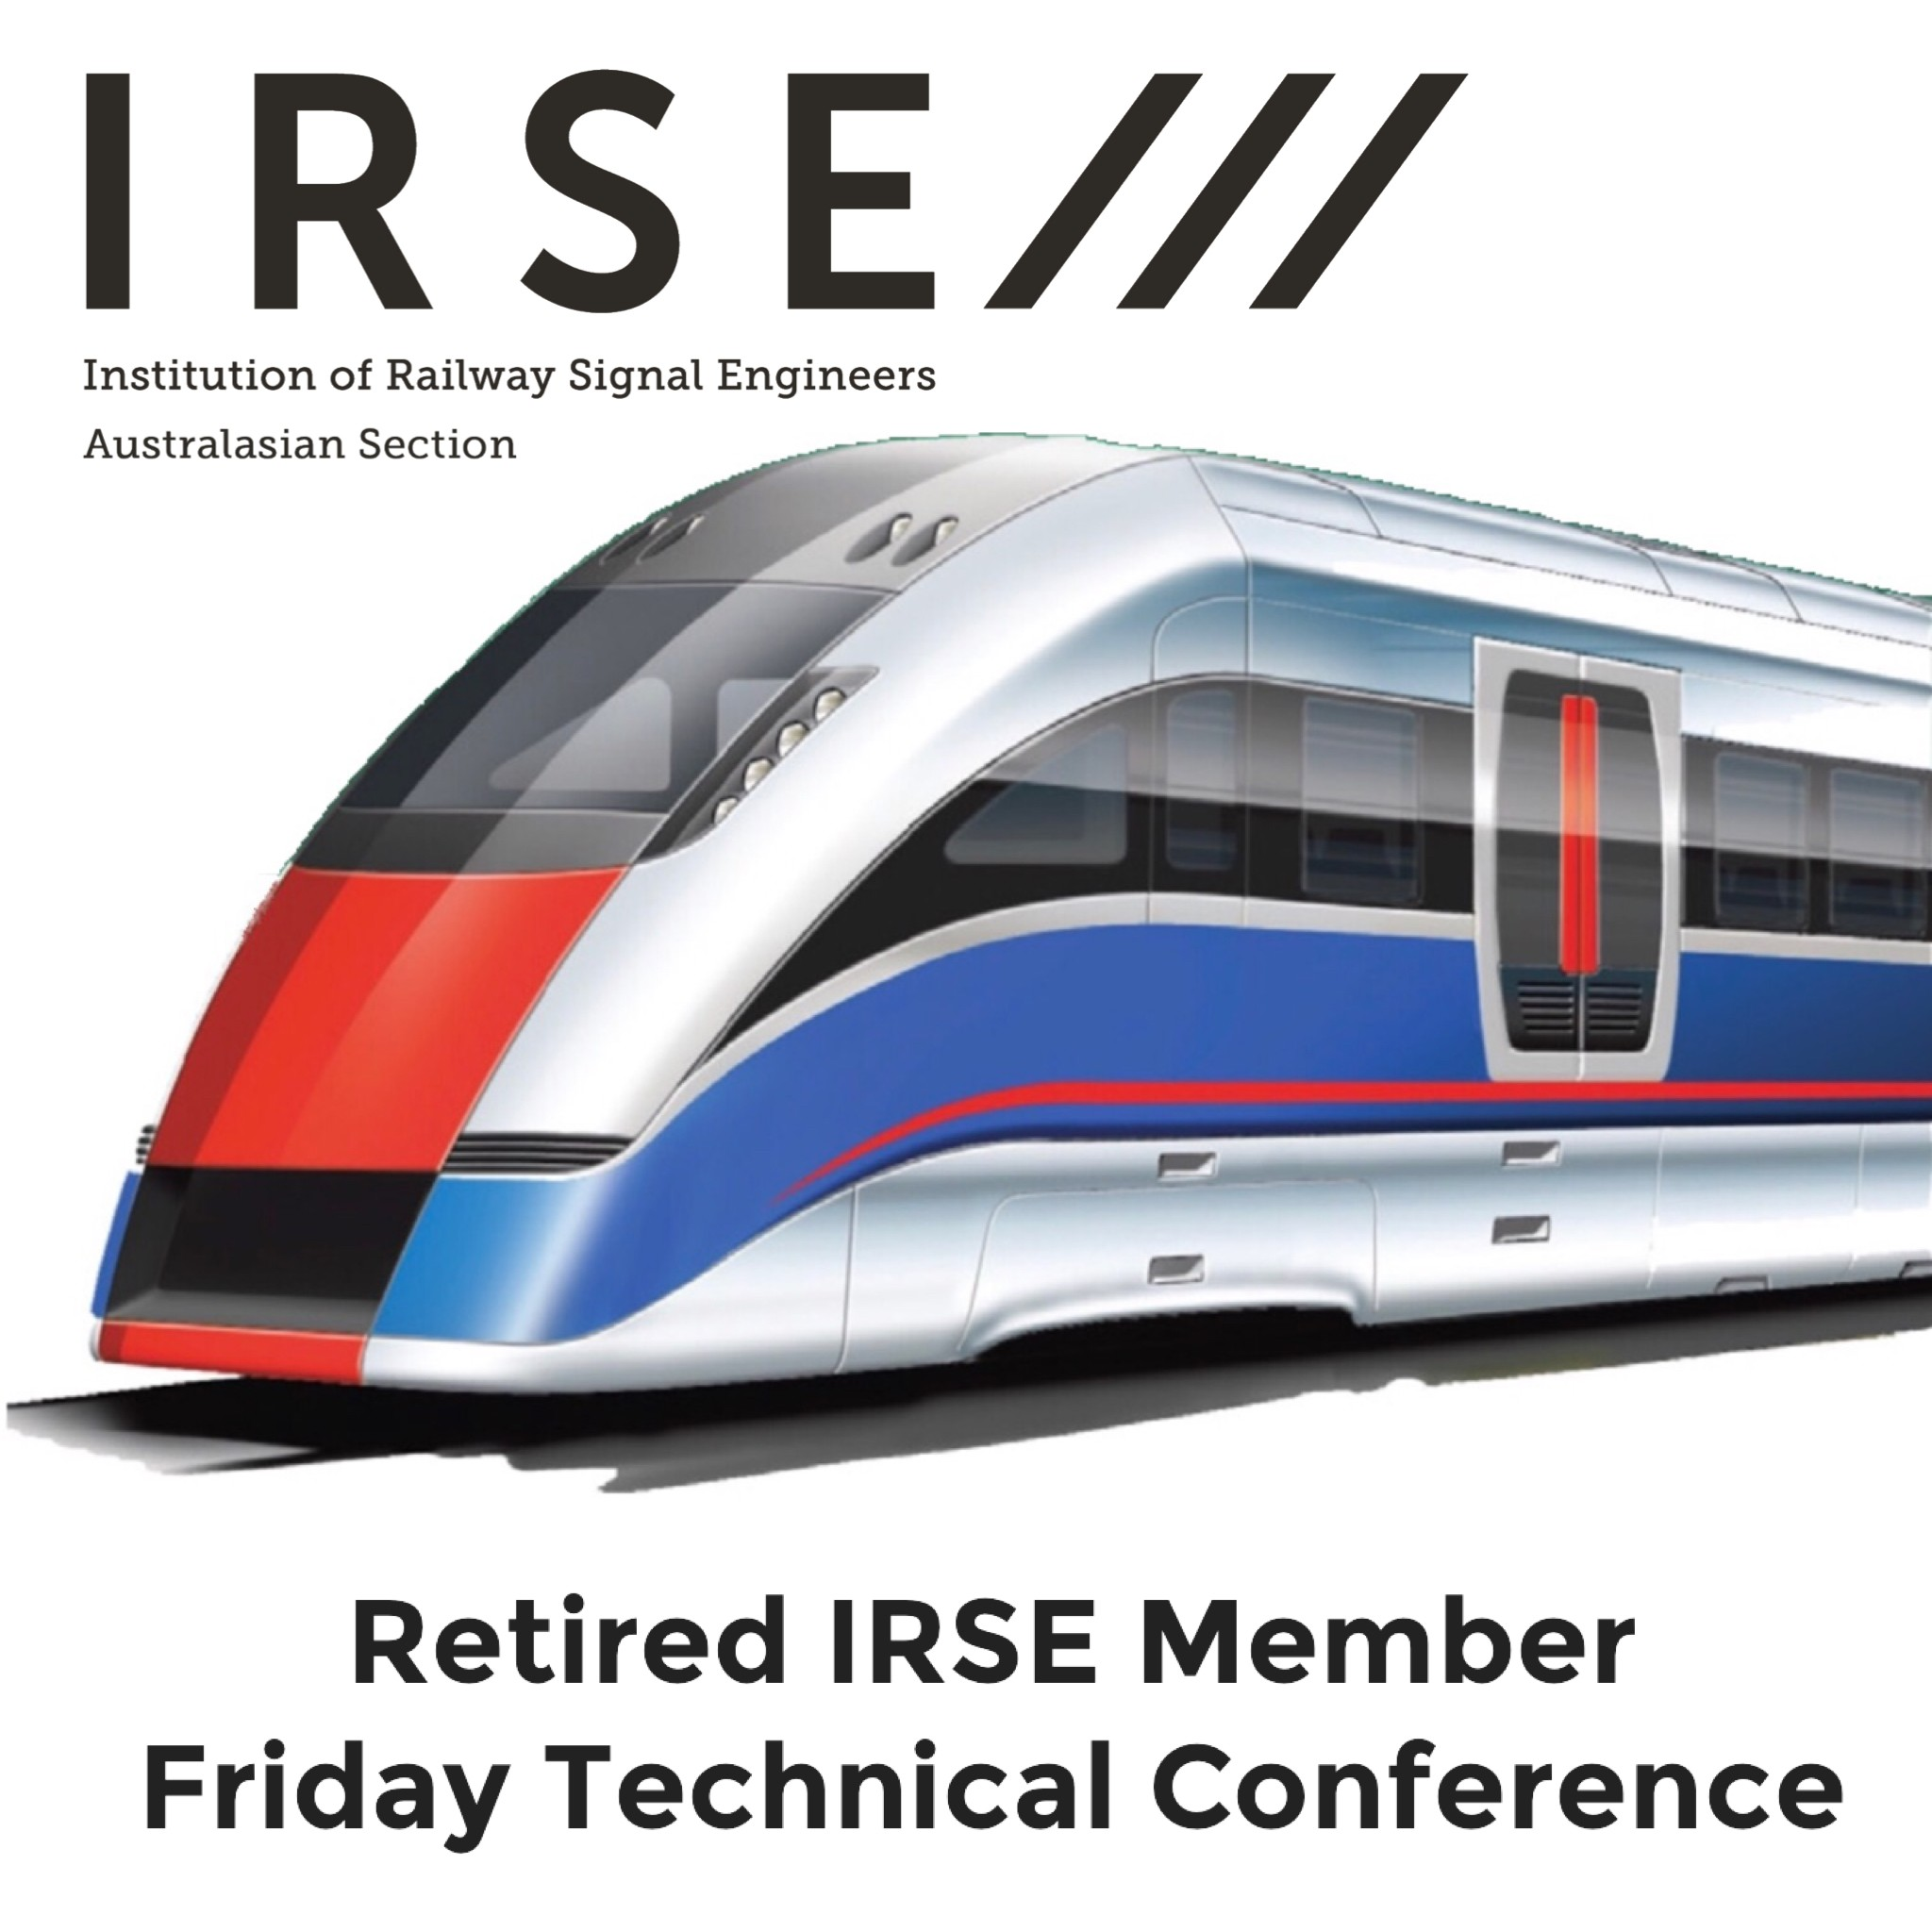 Registered Retired IRSE Australasia Member - Friday Technical Conference (non working)